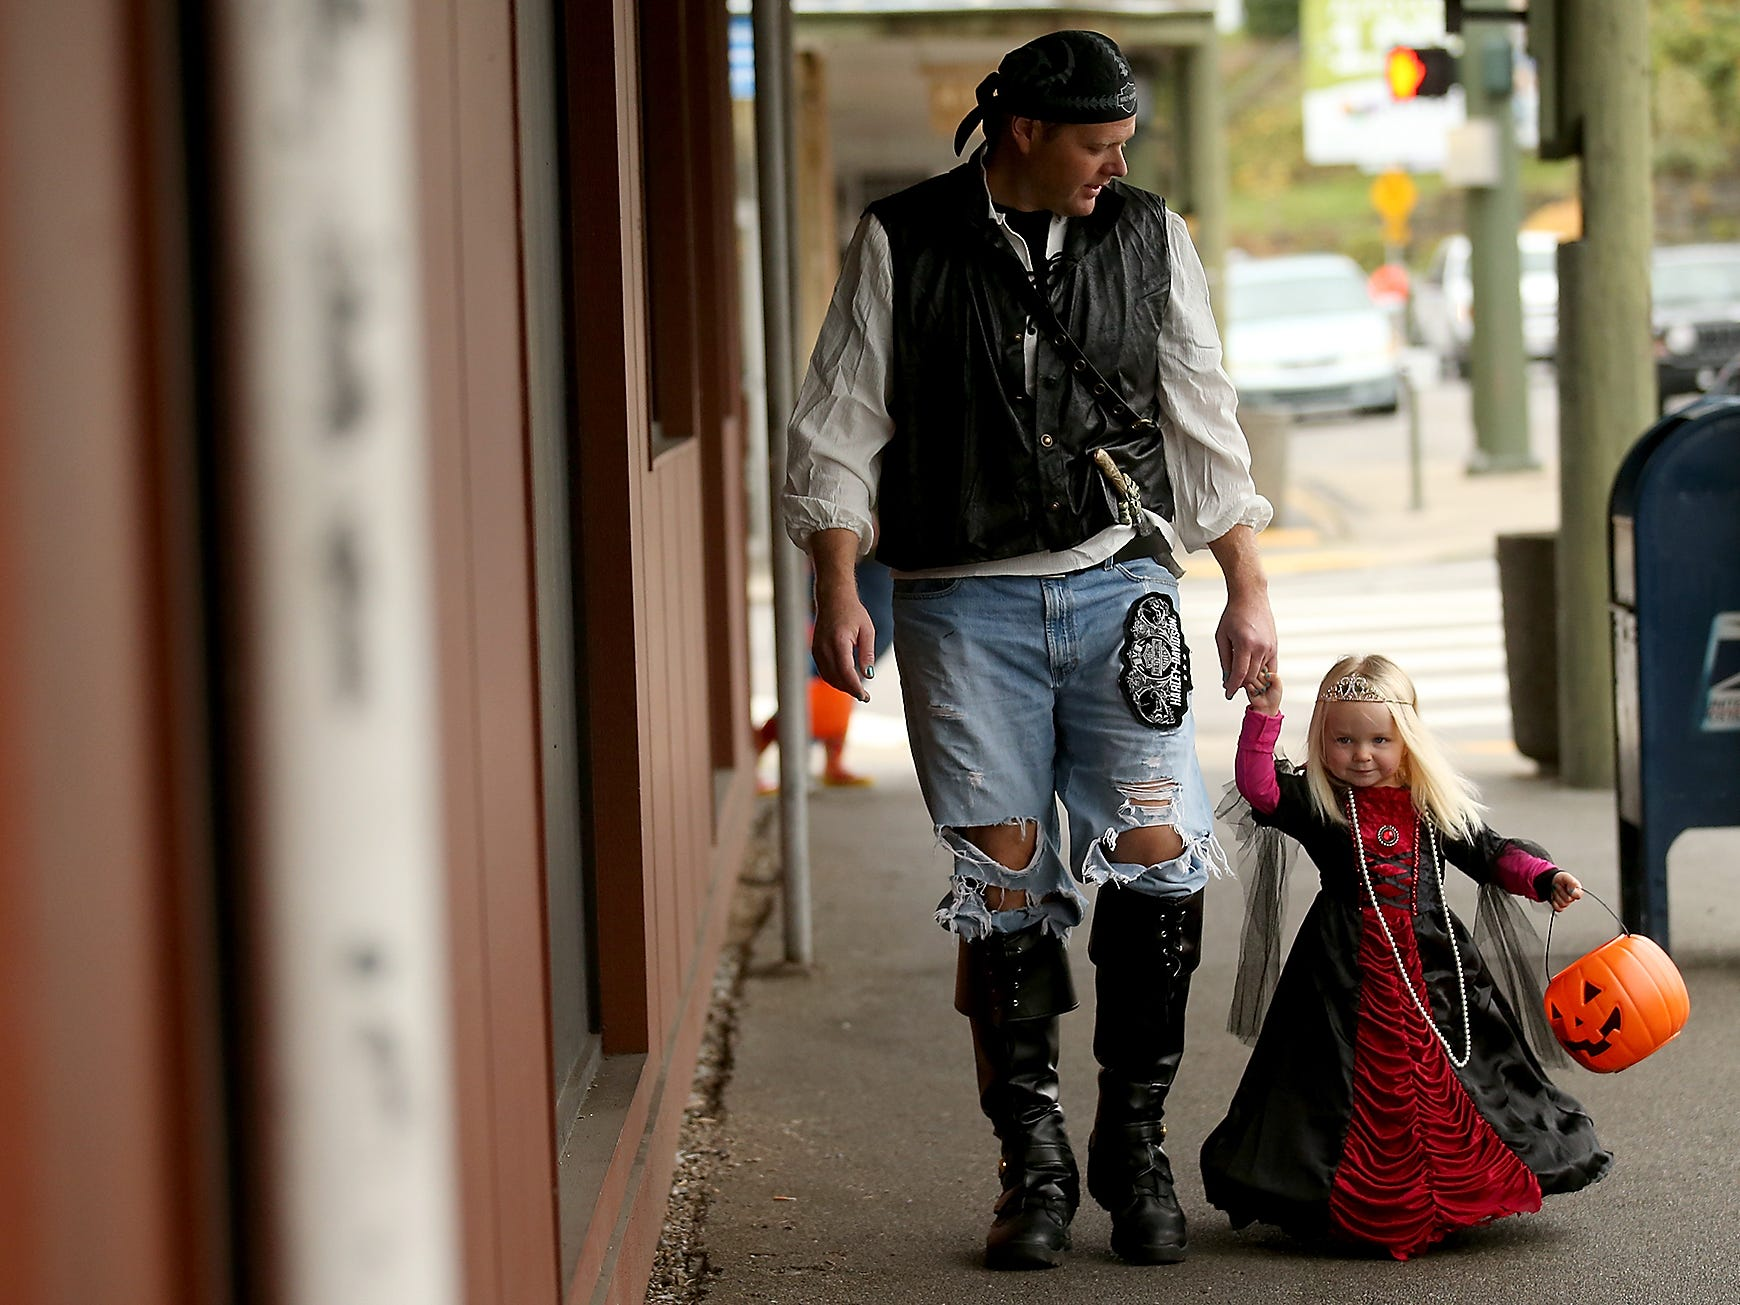 Brian Ottesen and daughter Danica, 3, make their way down the sidewalk in search of candy during the Halloween Spookfest in downtown Port Orchard on Saturday, October 27, 2018.